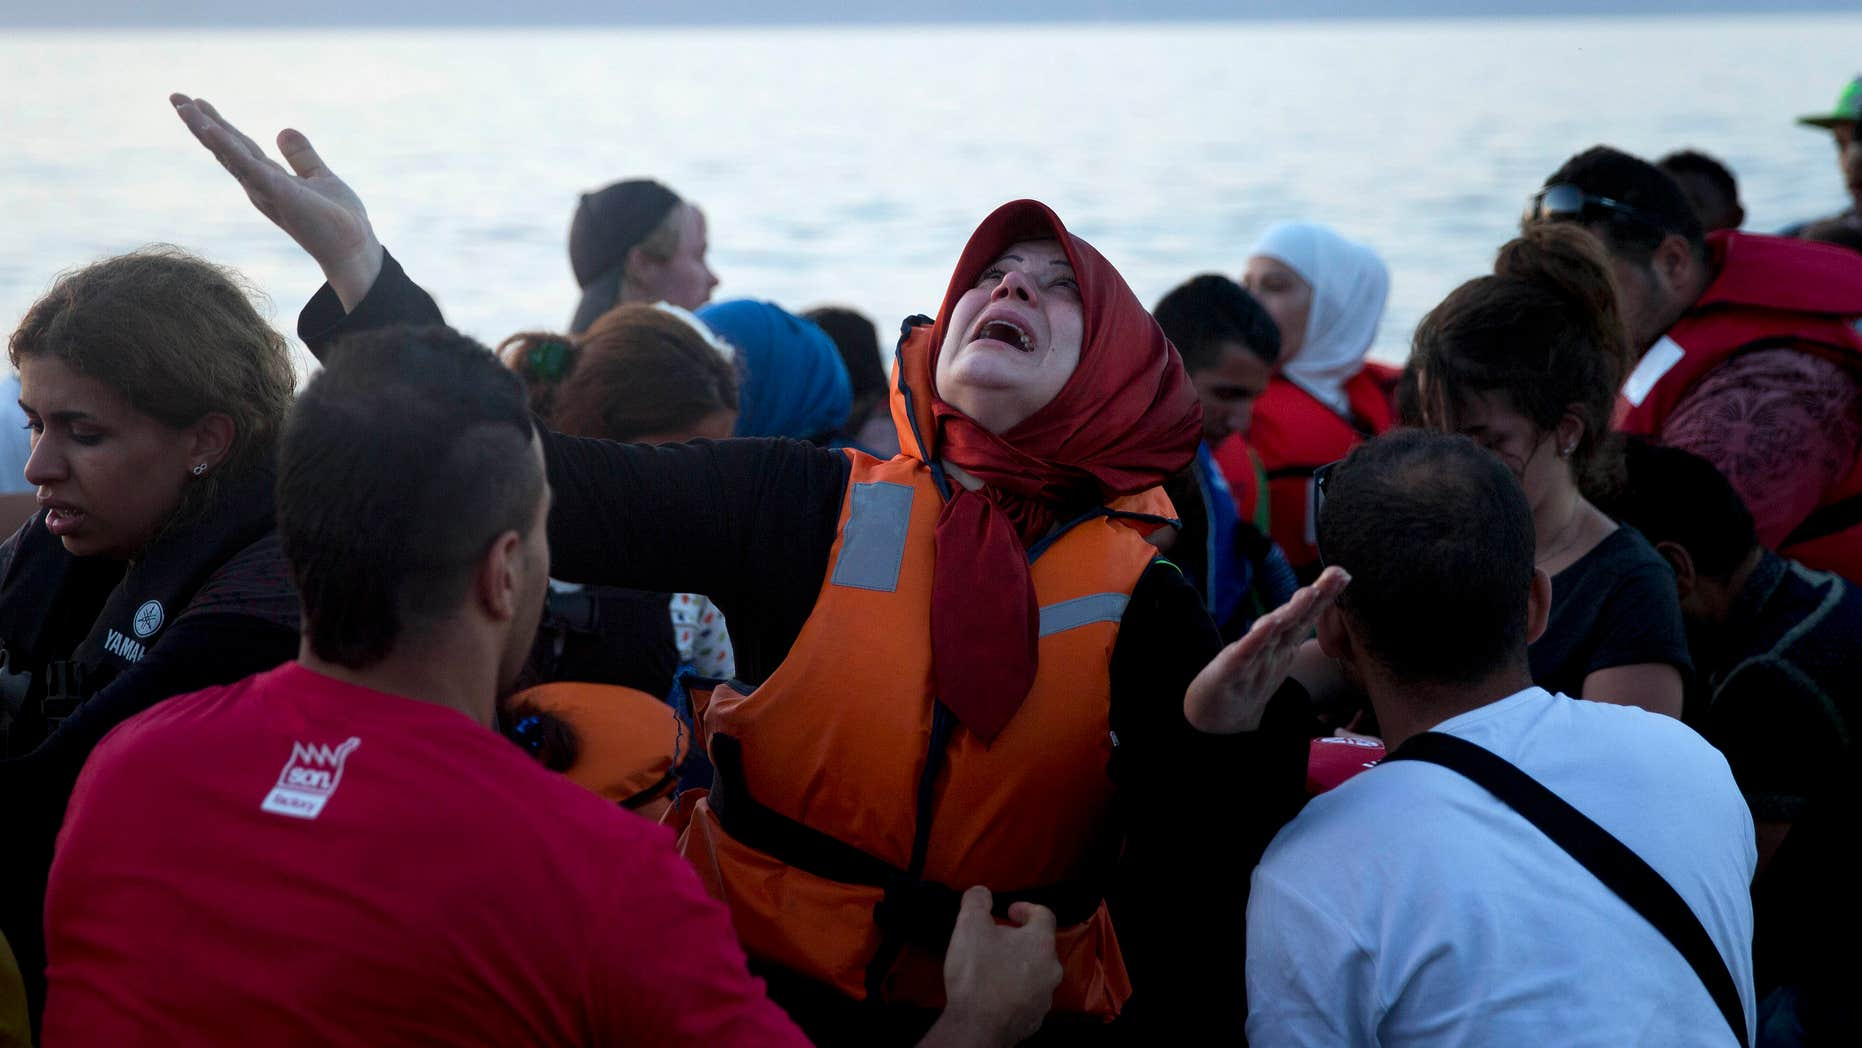 Sept. 19, 2015: A woman reacts as she arrives aboard a dinghy after crossing from Turkey, to the island of Lesbos, Greece